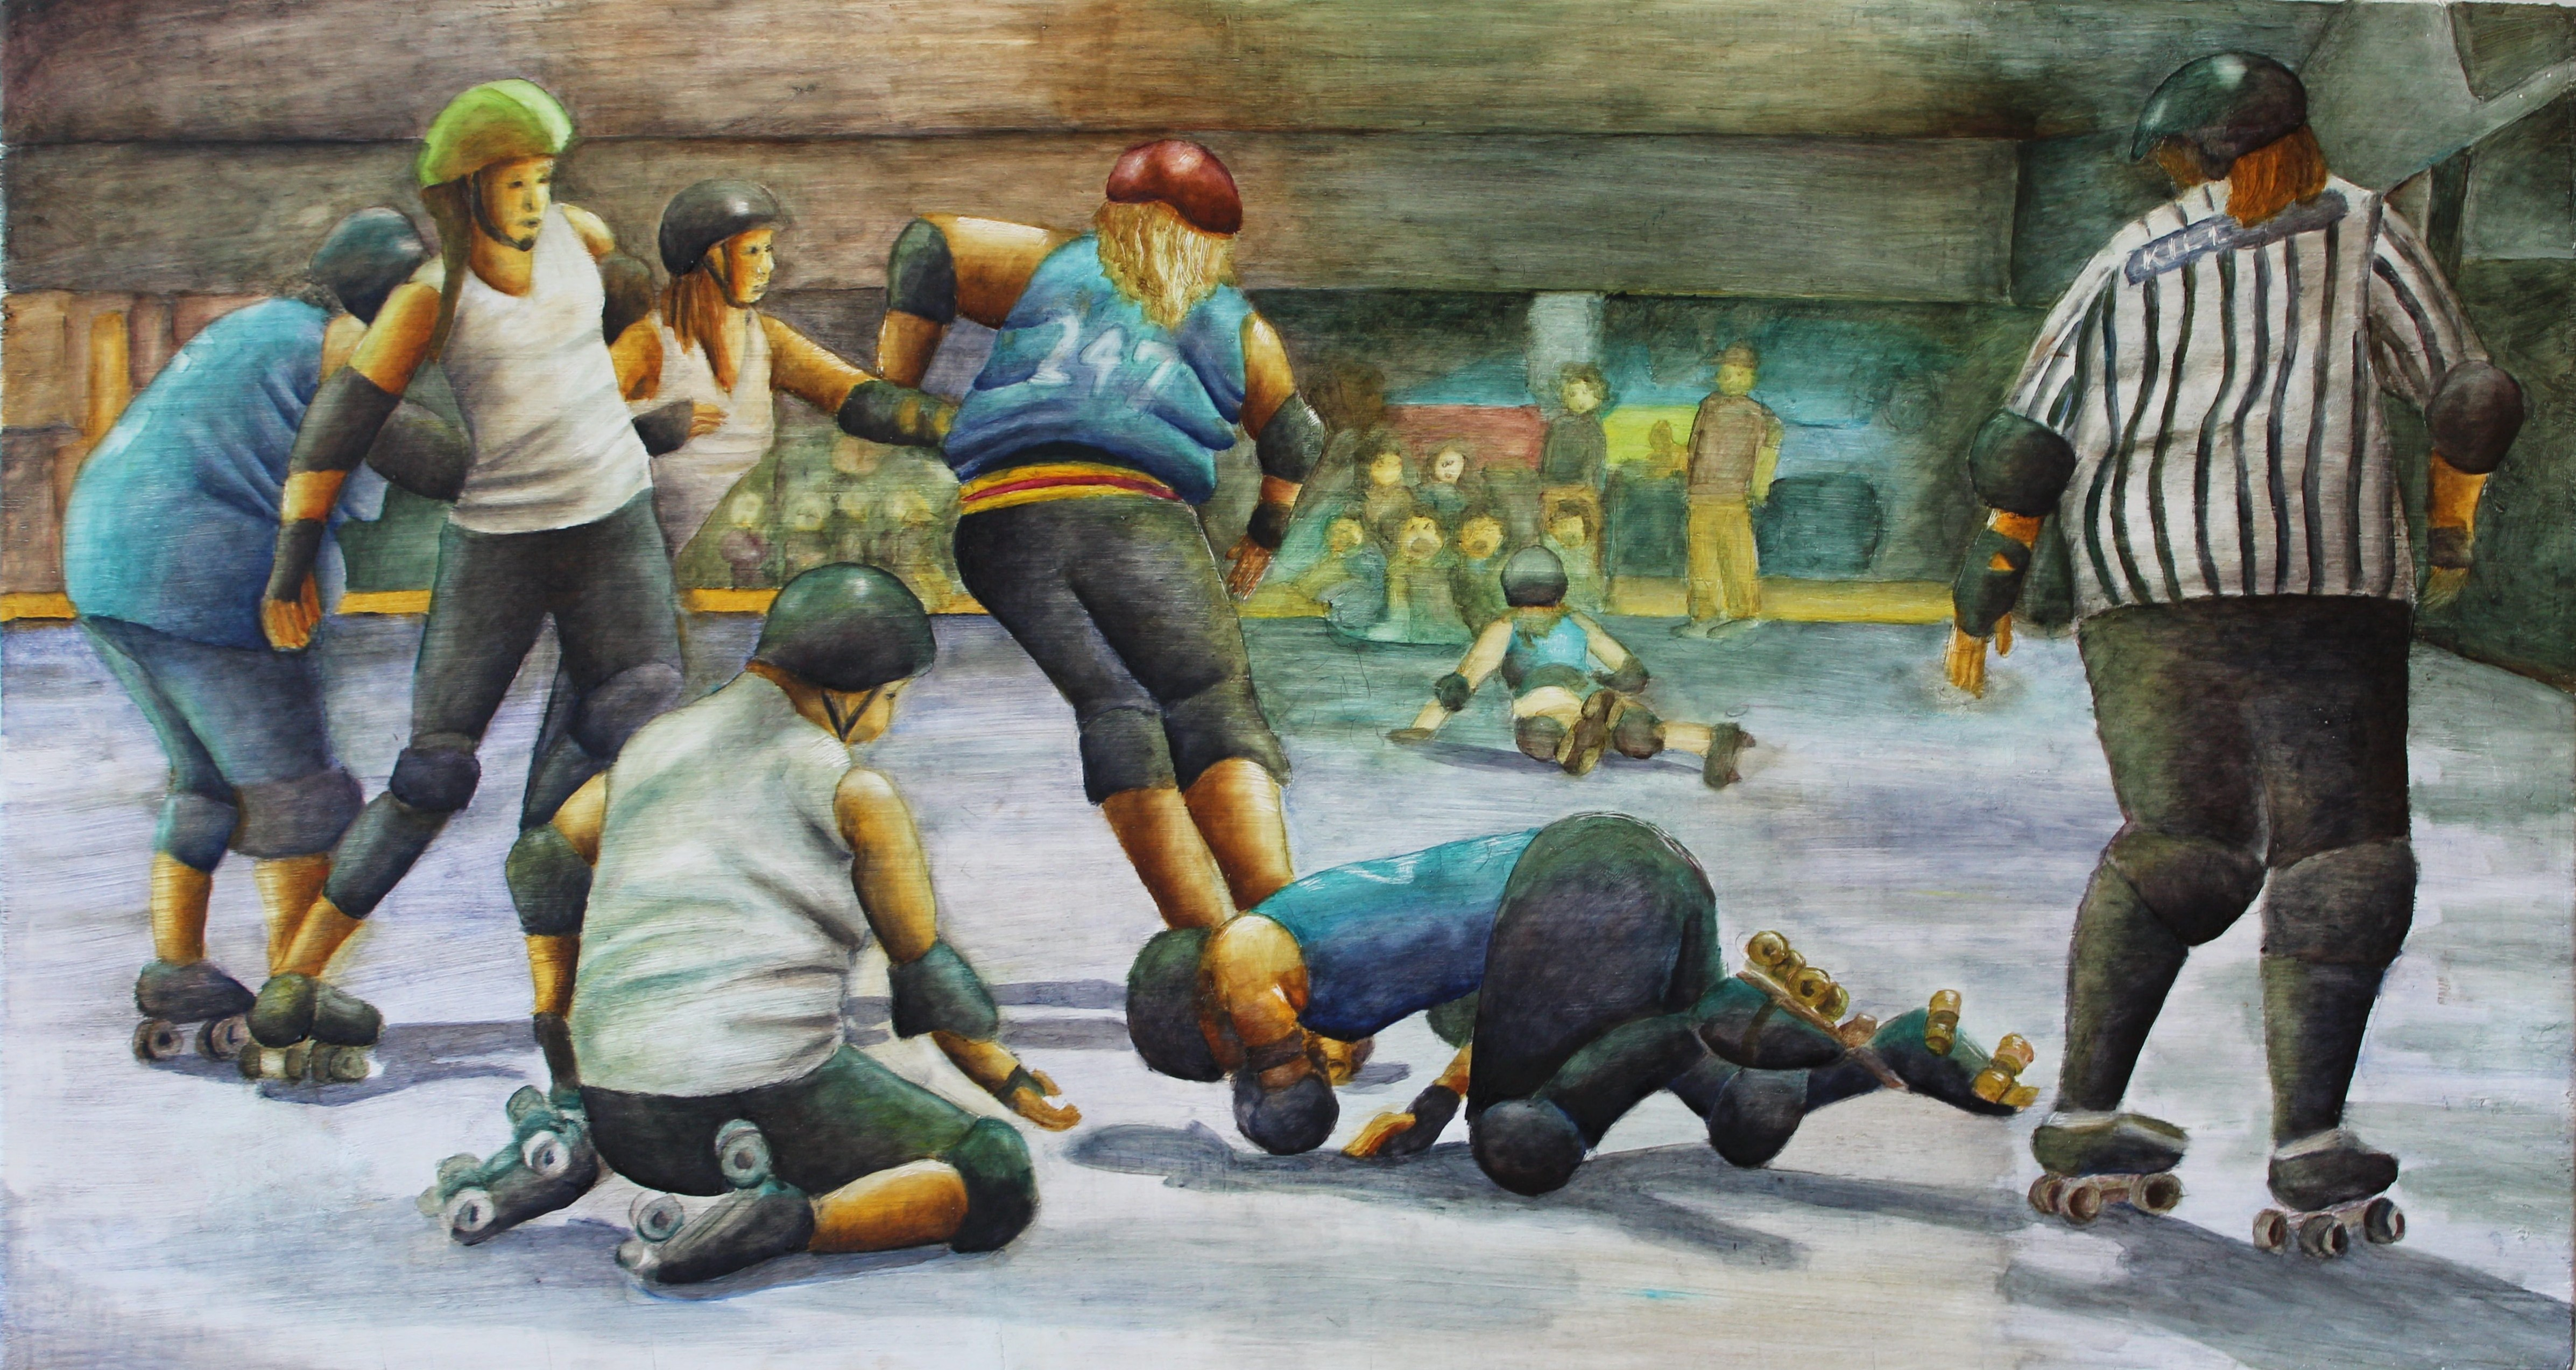 A painting of roller derby players and a referee on a skating track. The viewer has a perspective from behind the roller skaters and referee, not being able to see many faces. Two of the skaters are on the ground, while others rush around them.